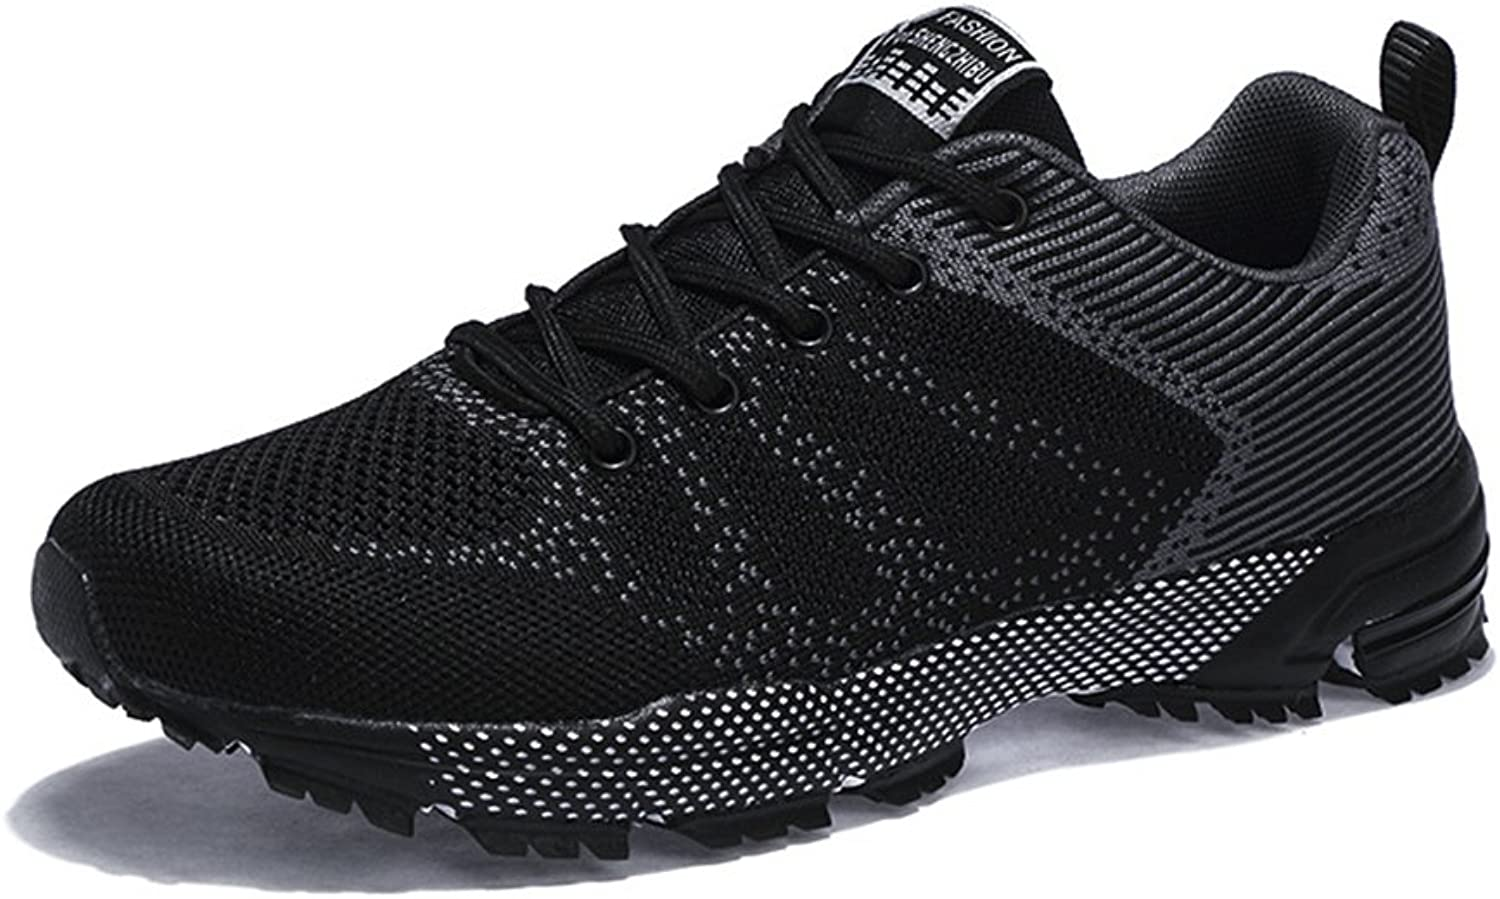 BERTERI Outdoor Running shoes Male Lightweight Air Mesh Breathable Lace-Up Fashion Sneakers